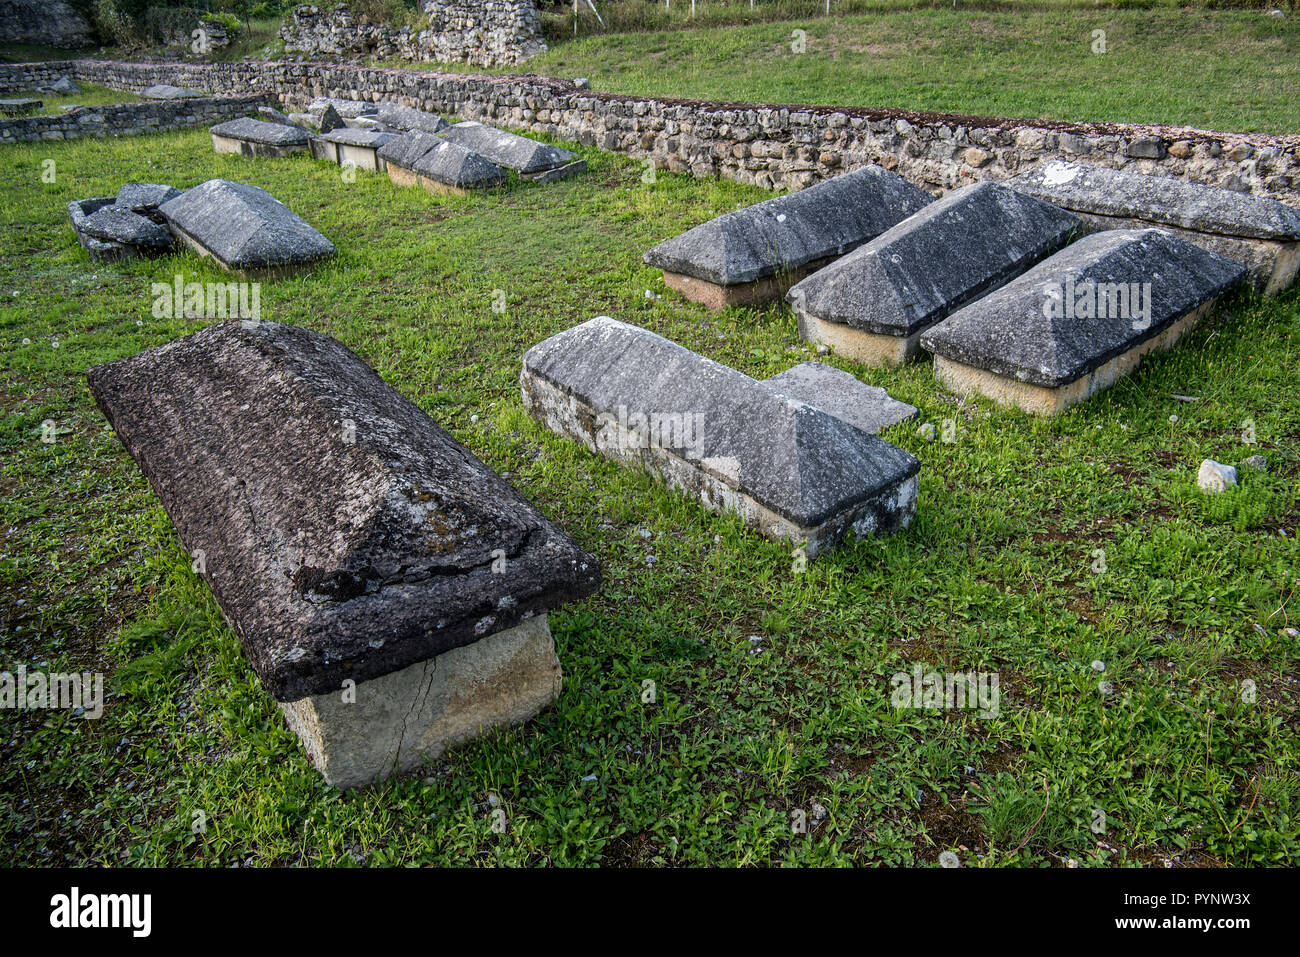 Sarcophagi among remains of the 5th century Early Christianity / Early Church basilica at Saint-Bertrand-de-Comminges, Haute-Garonne, Pyrenees, France - Stock Image